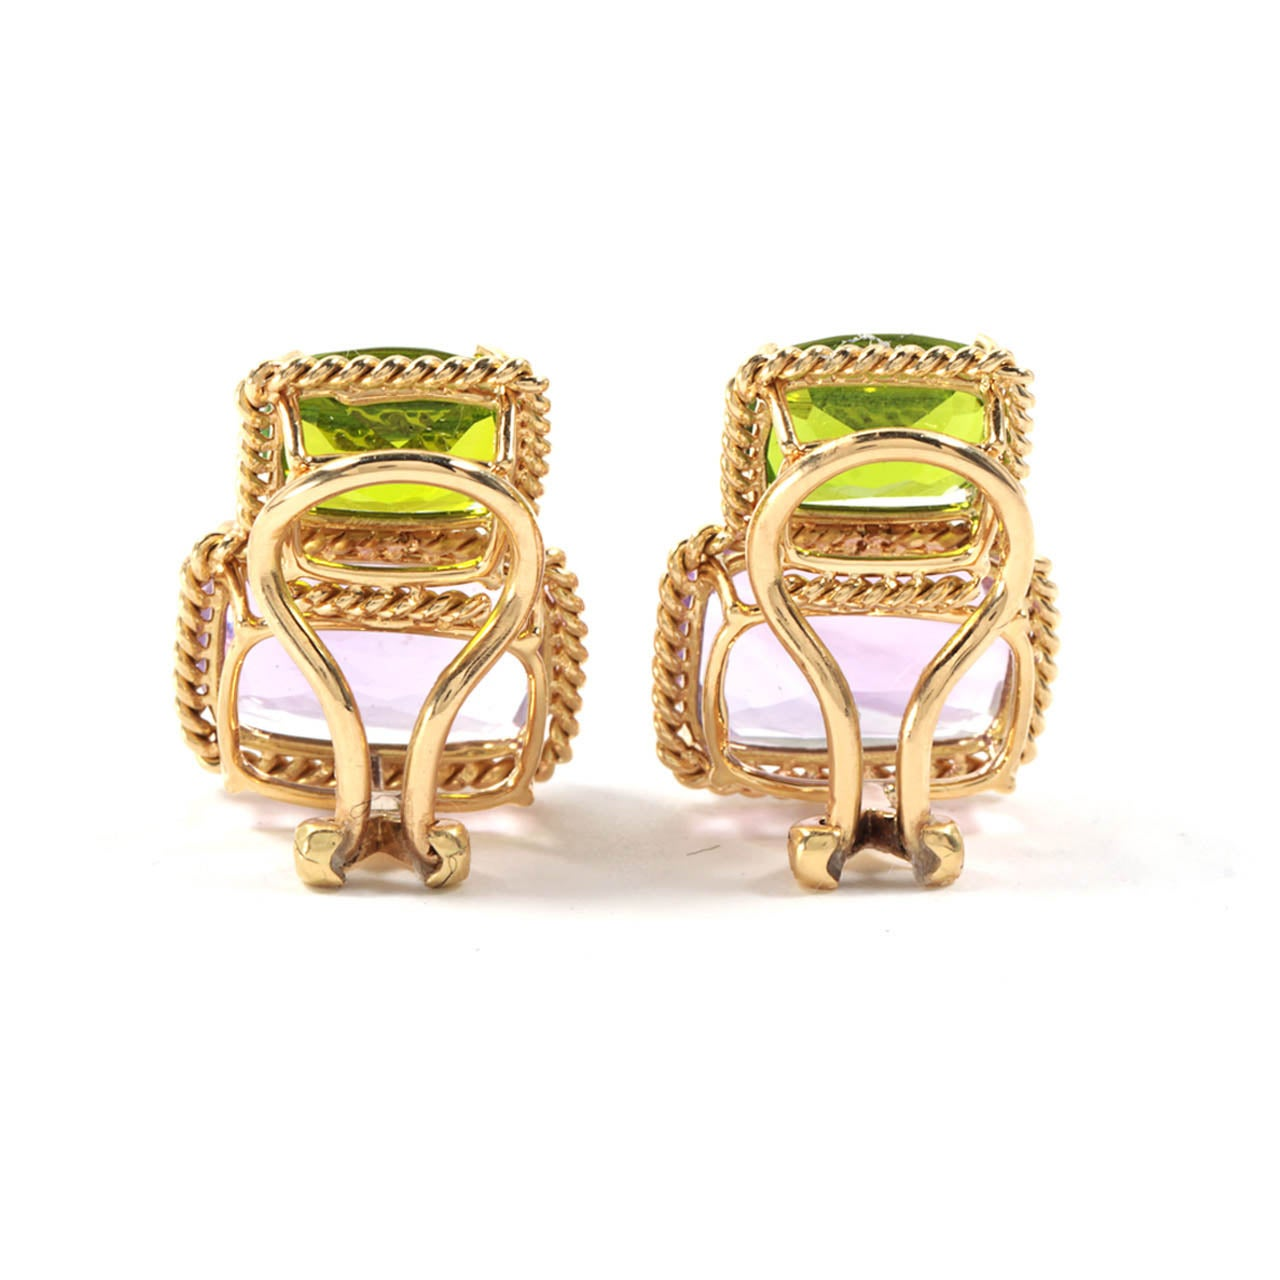 Yellow Gold Two Stone Earring with Rope Twist Border - medium size 2